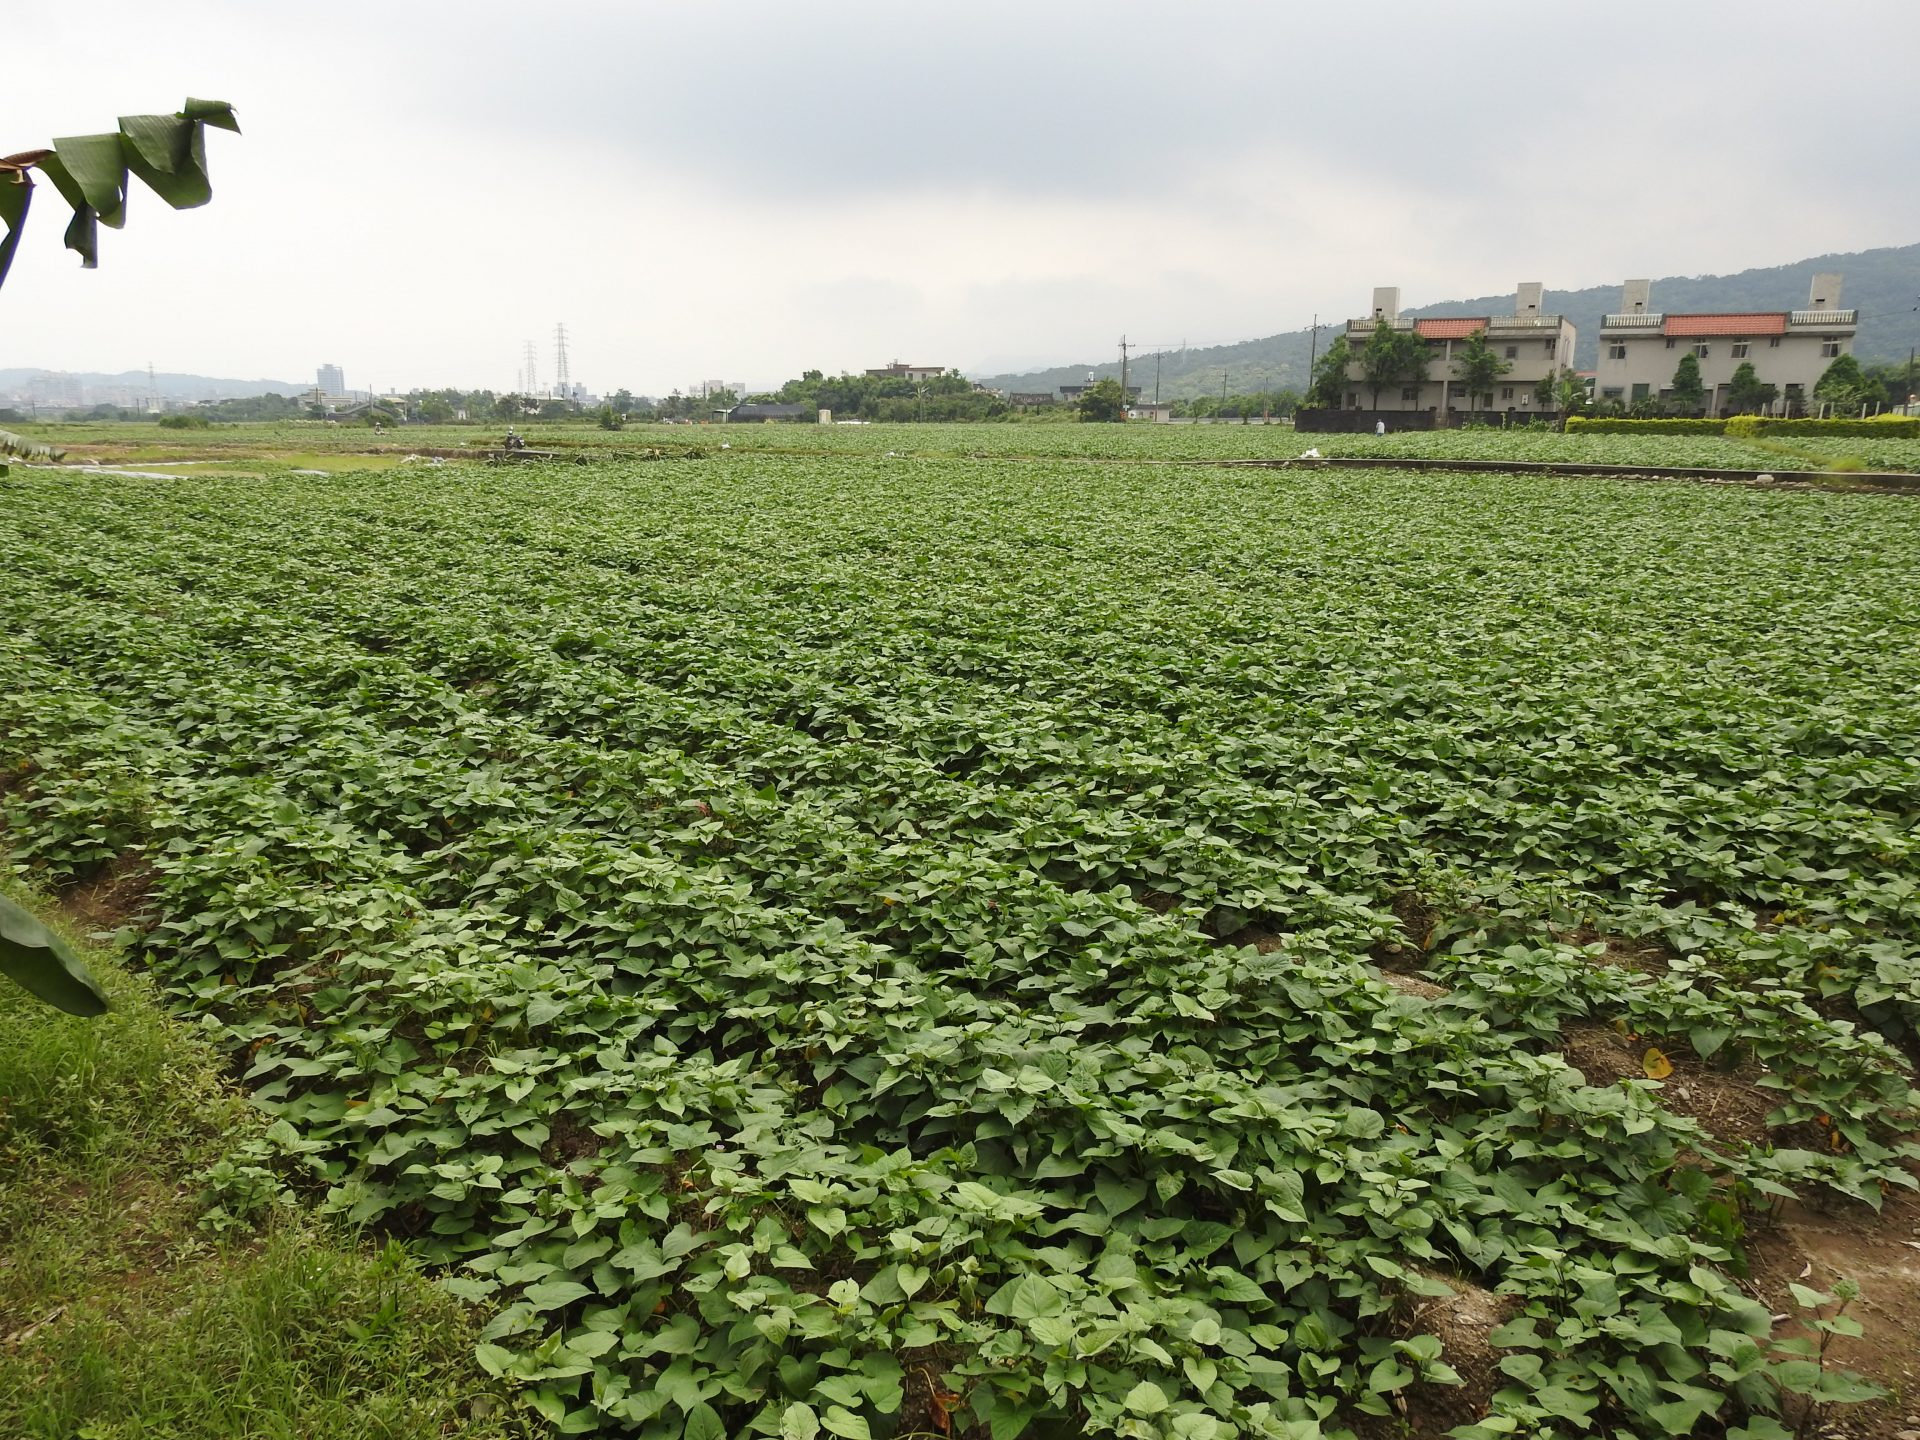 The immense fields of sweet potatoes in the Jinshan District. (Image: Billy Shyu/ Vision Times)